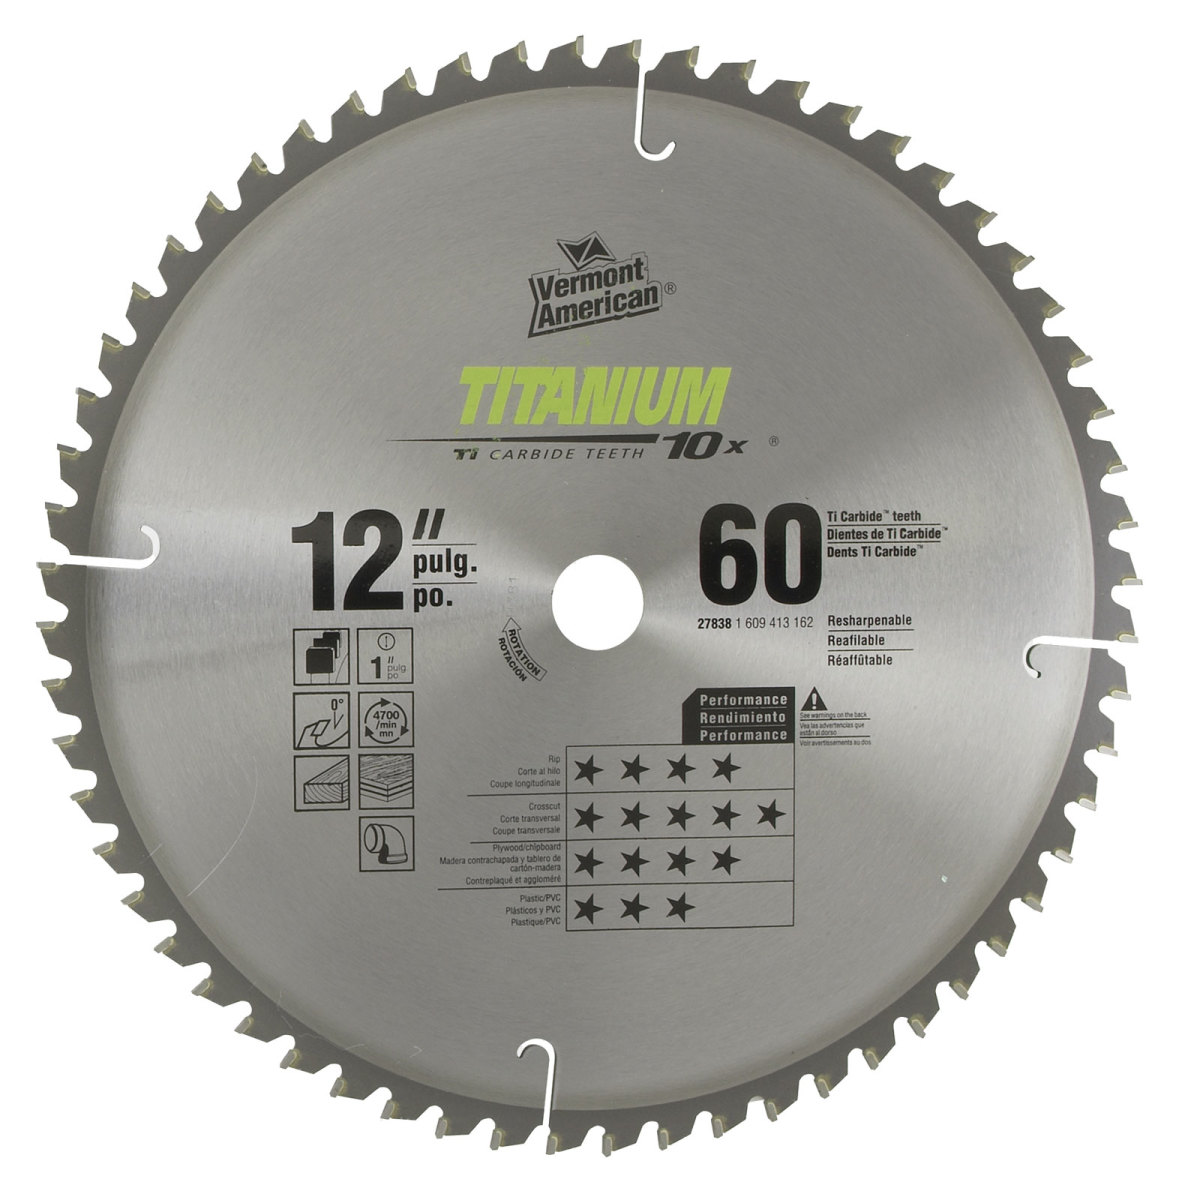 vermont-american-saw-blade